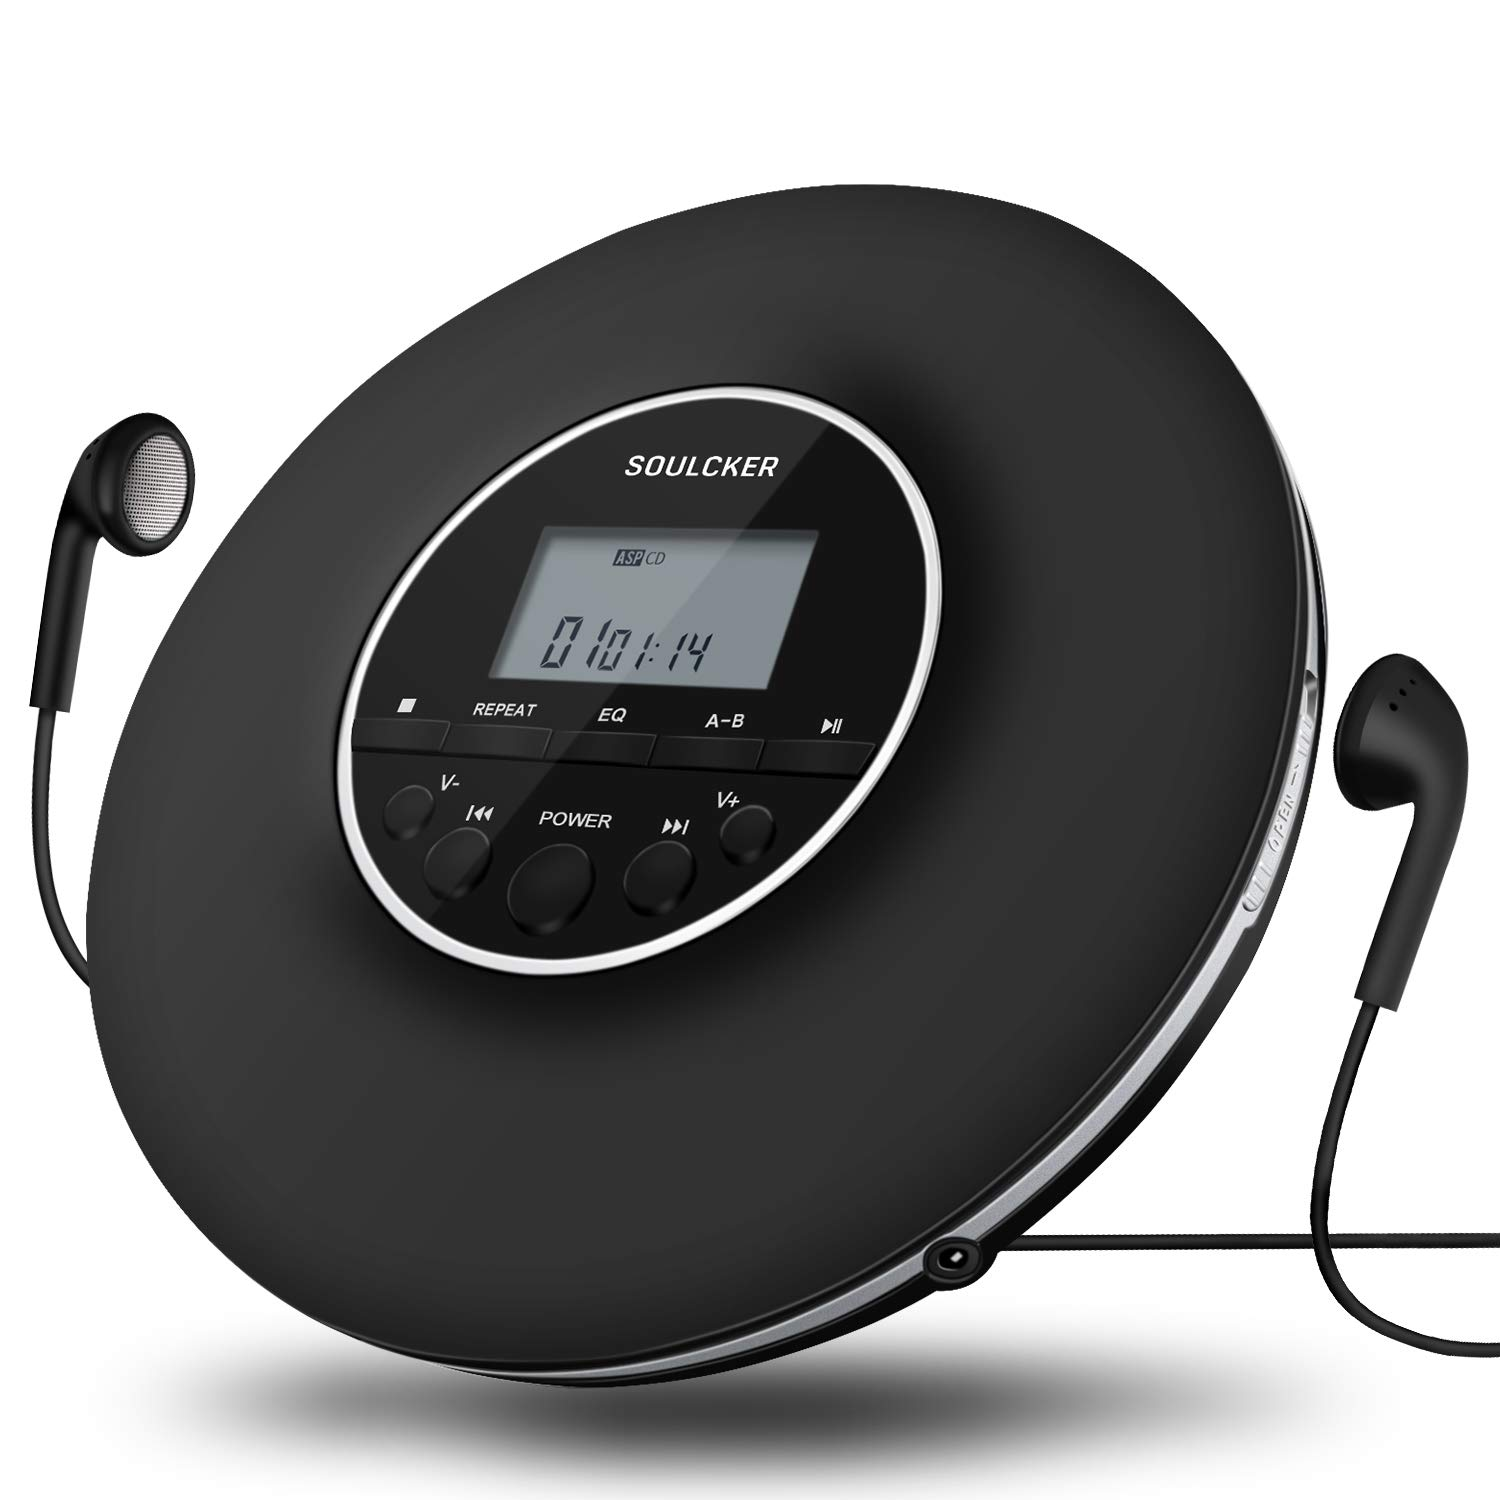 Portable CD Player, Soulcker Personal Compact Disc CD Player with Headphones Jack, Anti-Skip/Shockproof Protection Small Music CD Walkman Players with LCD Display for Adults Students Kids